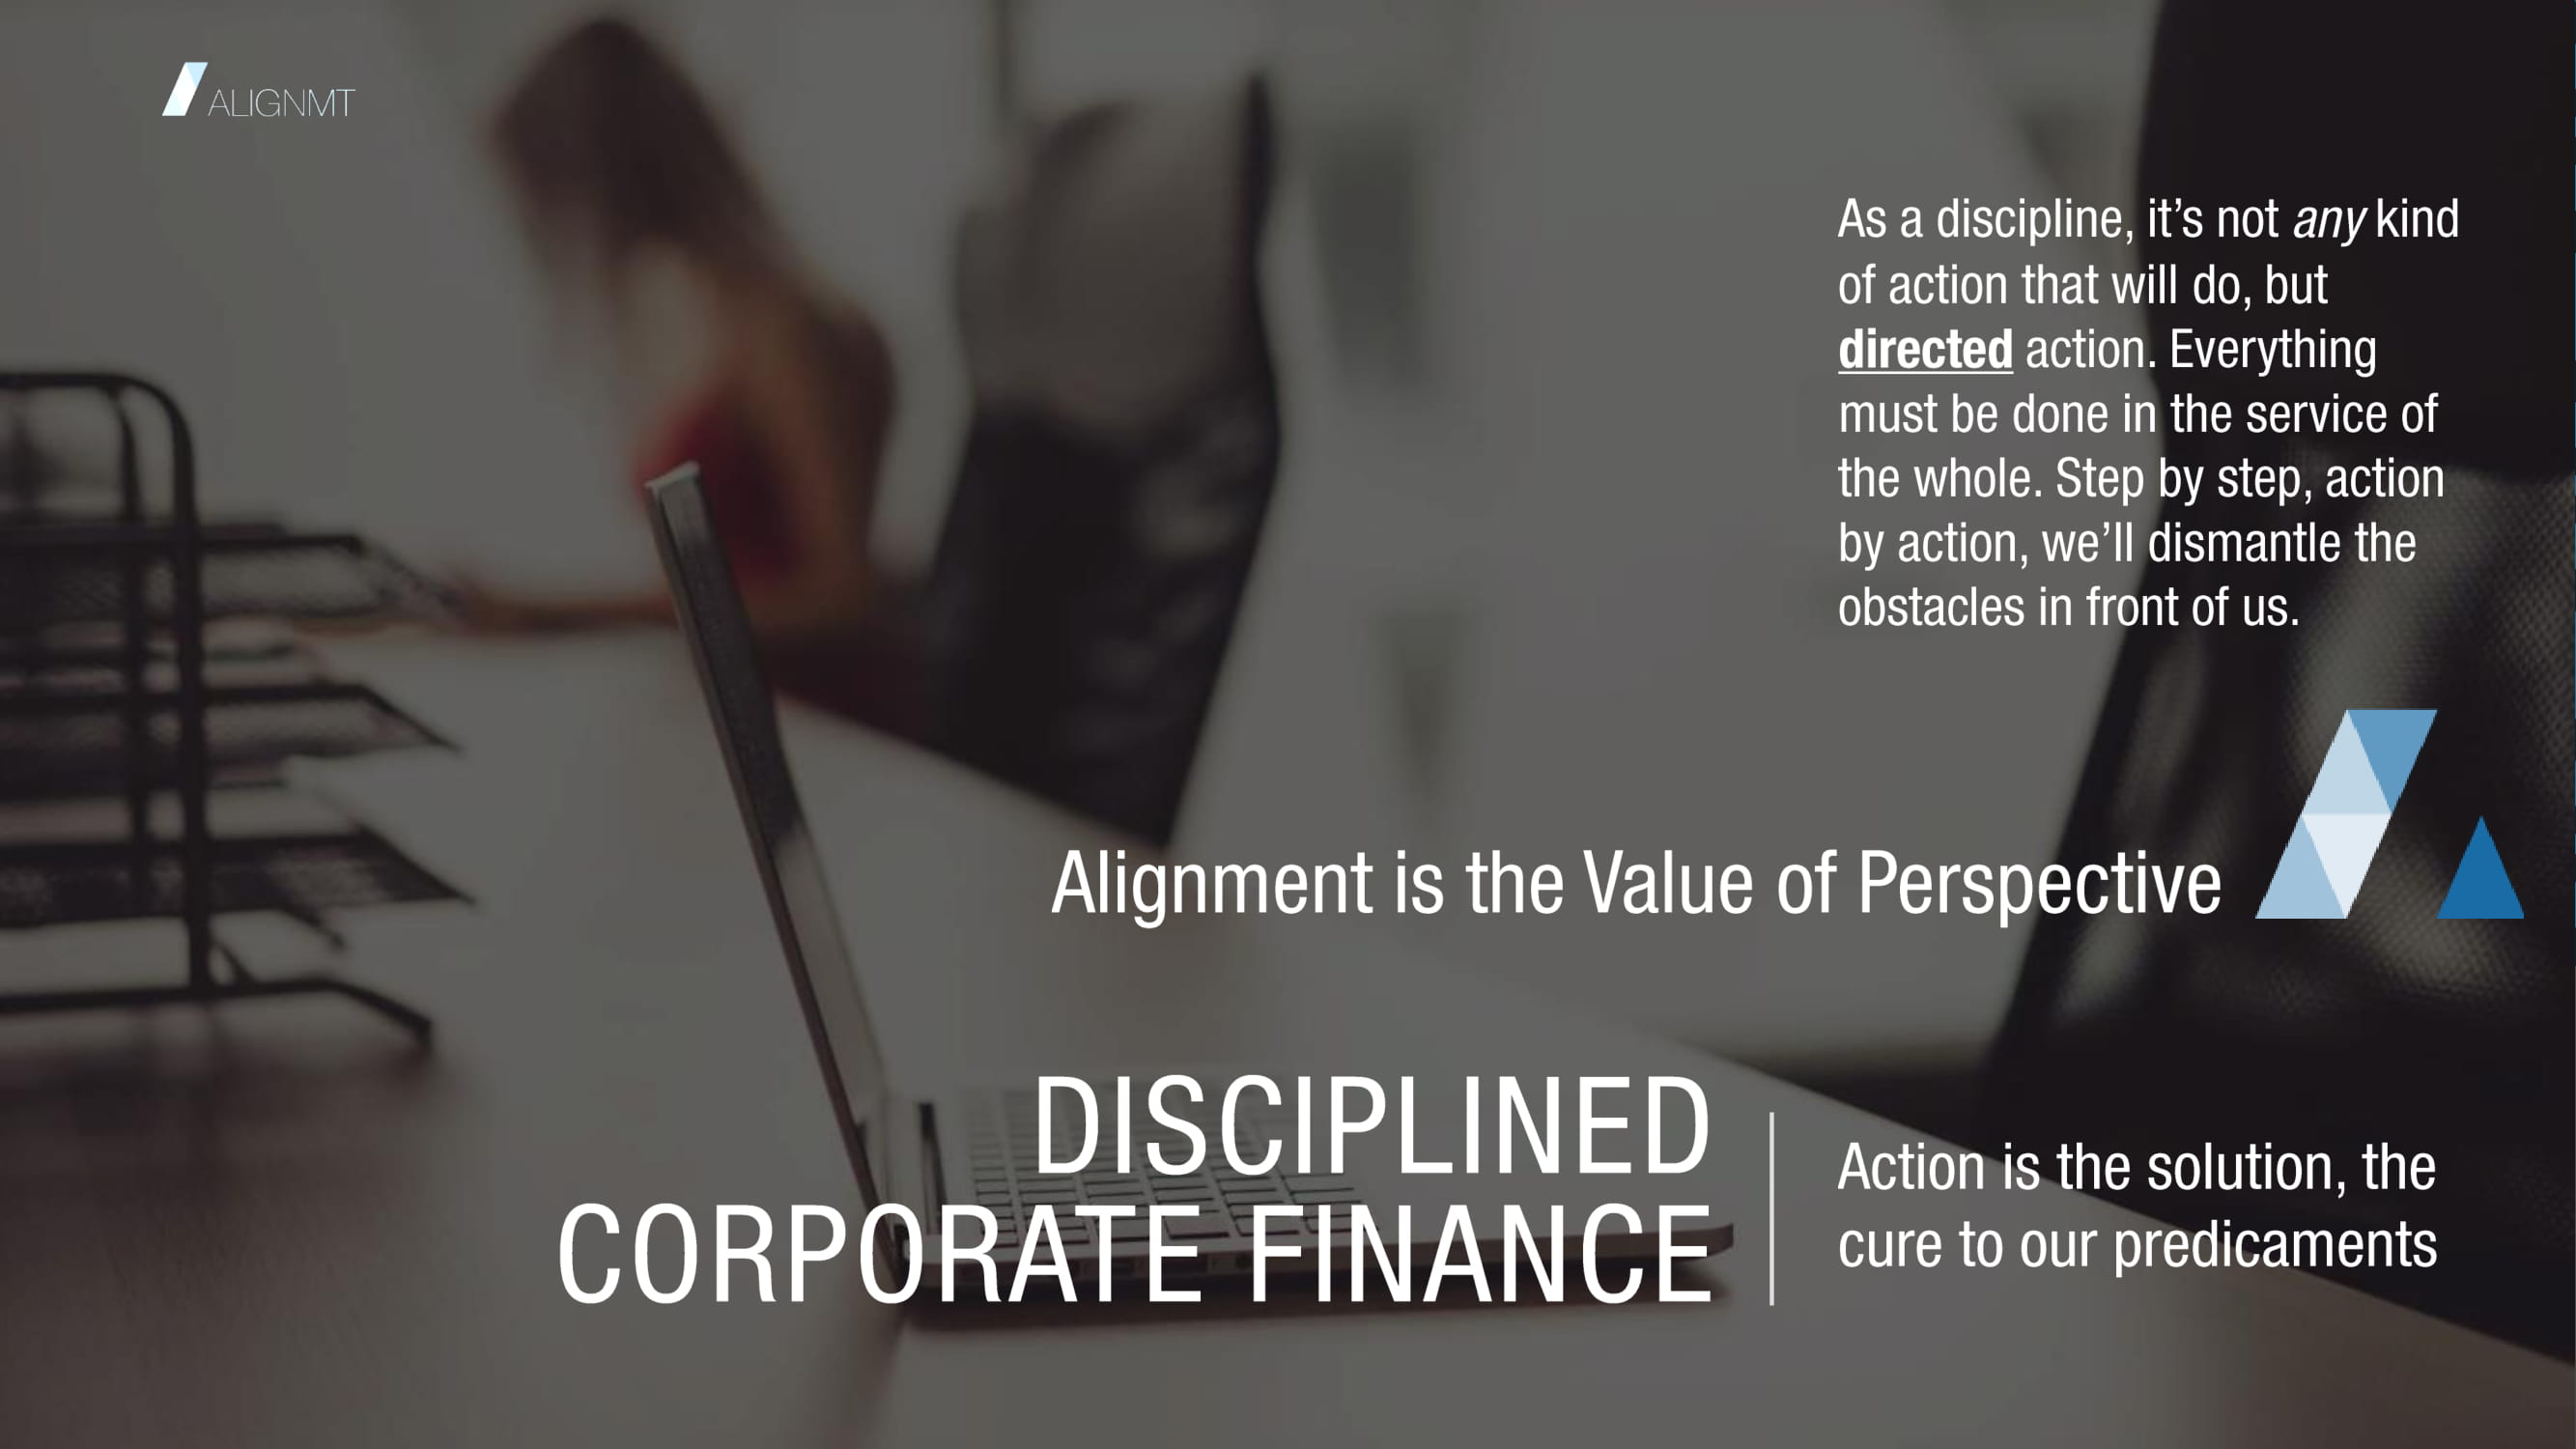 ALIGNMT Disciplined Corporate Finance